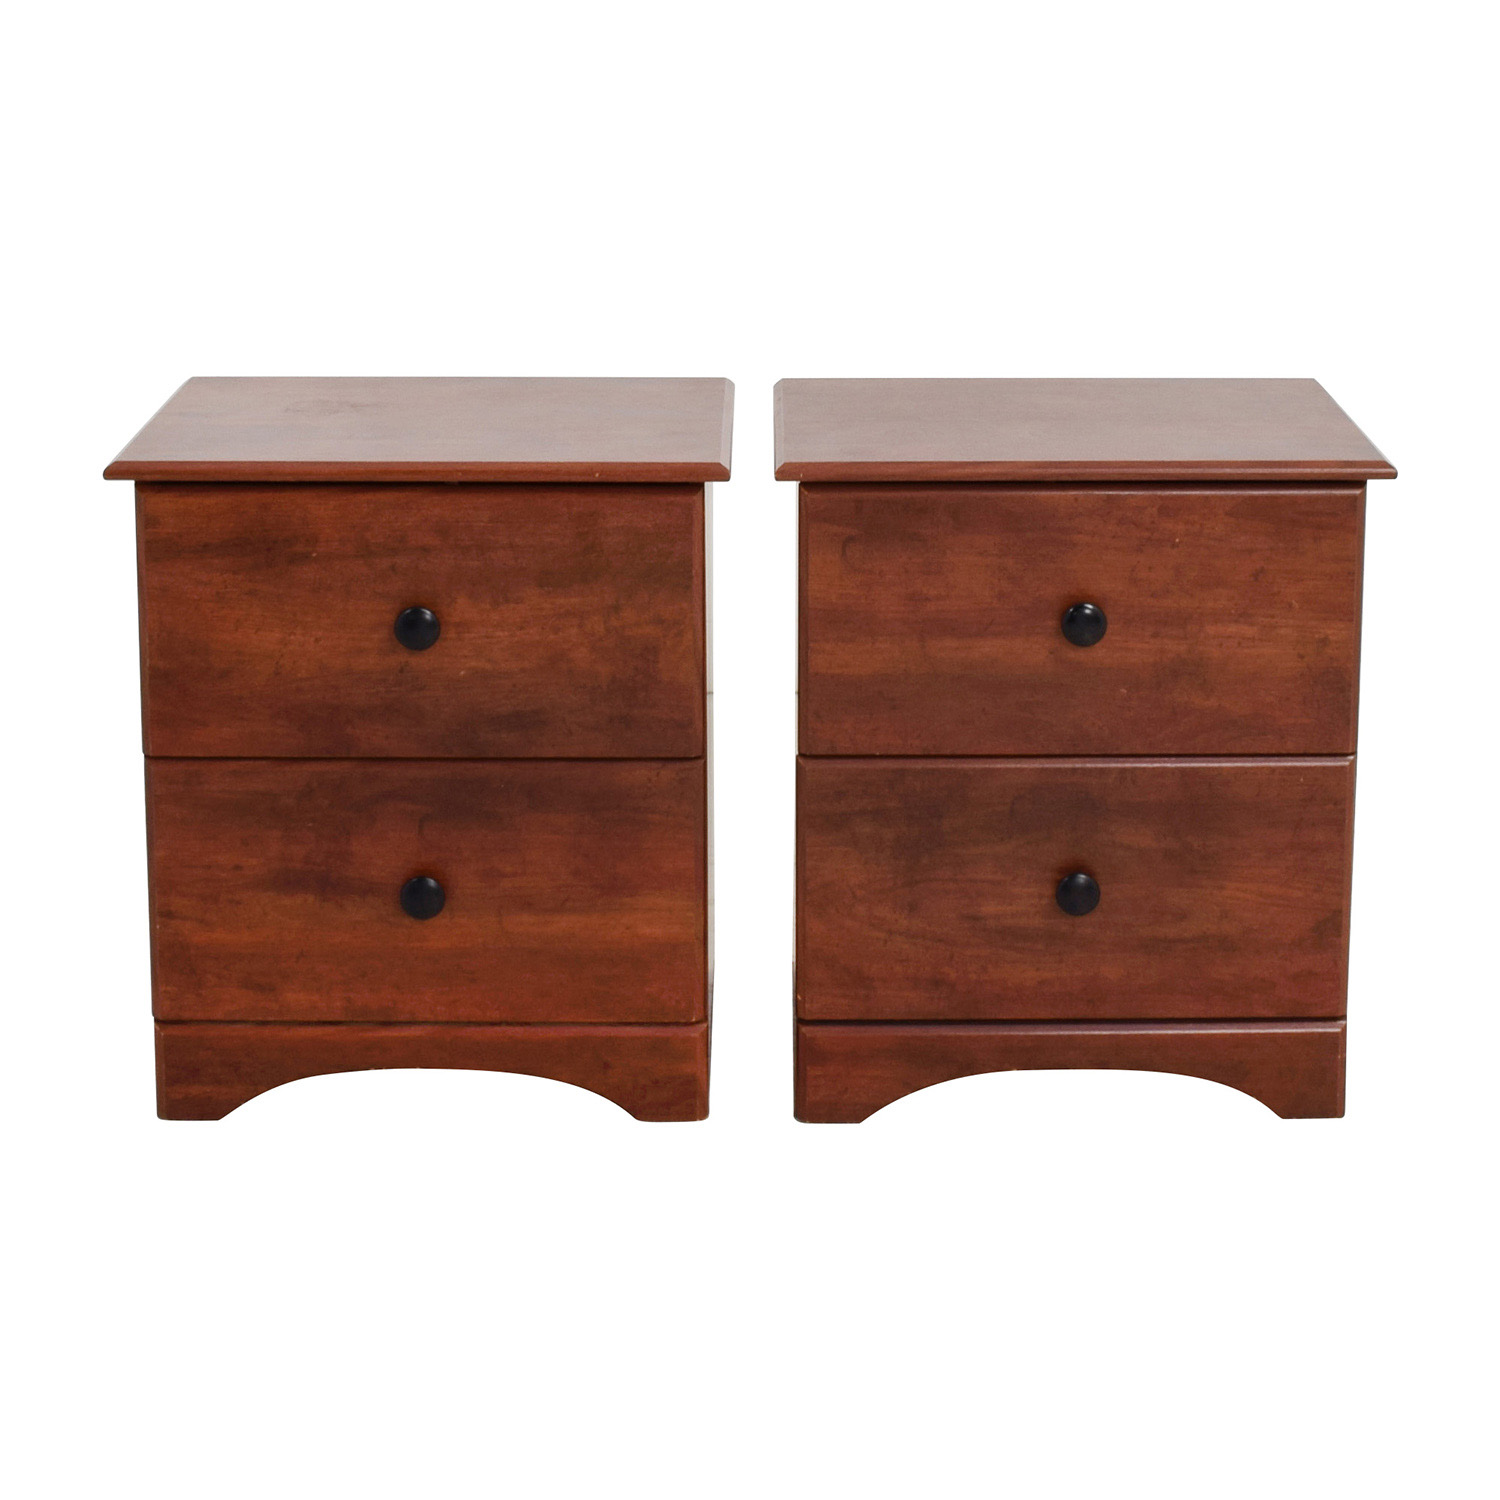 Perdue Perdue Dark Brown Two-Drawer Nightstand price